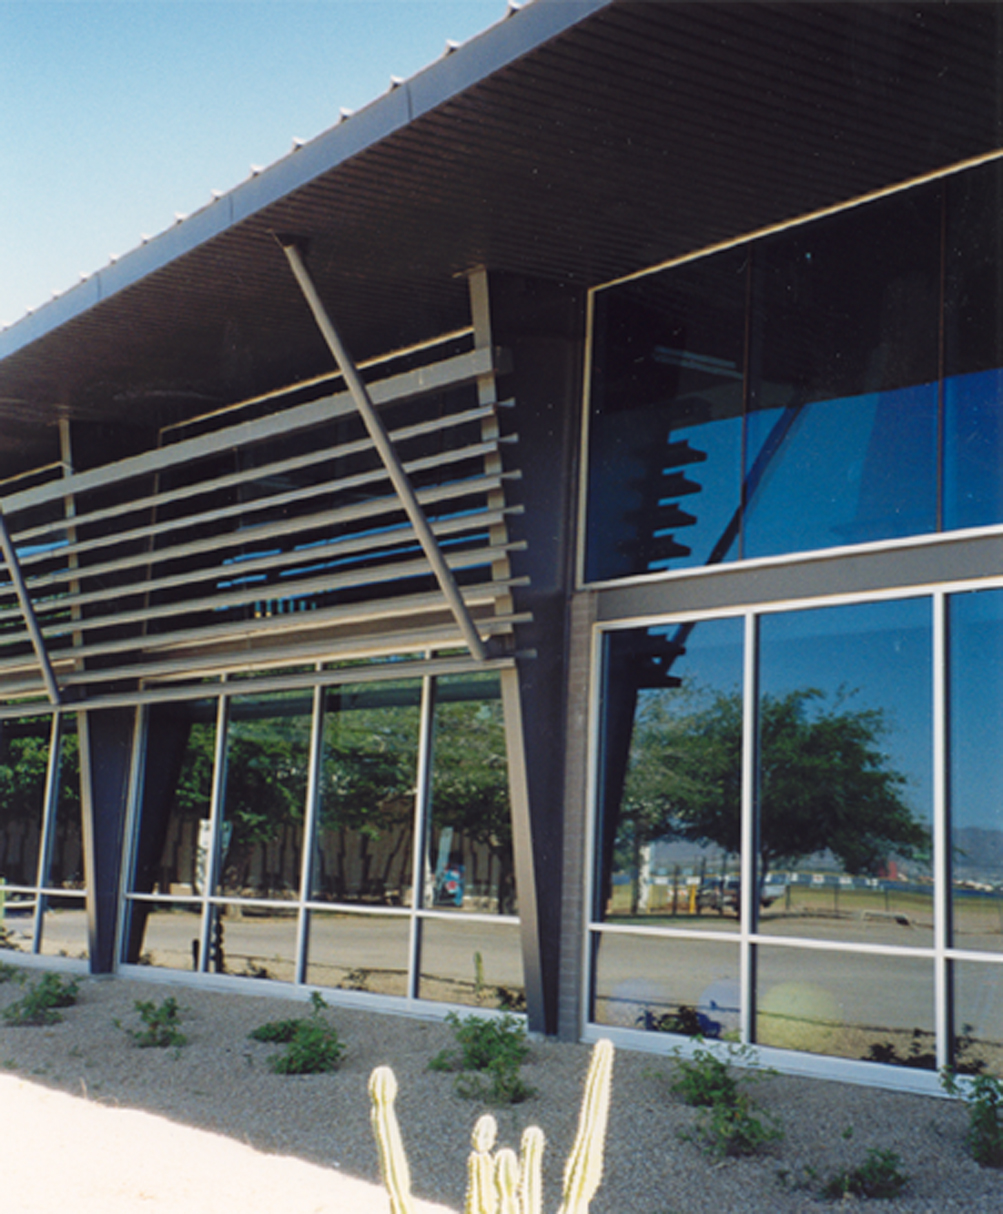 Scottsdale Community College Fitness Center